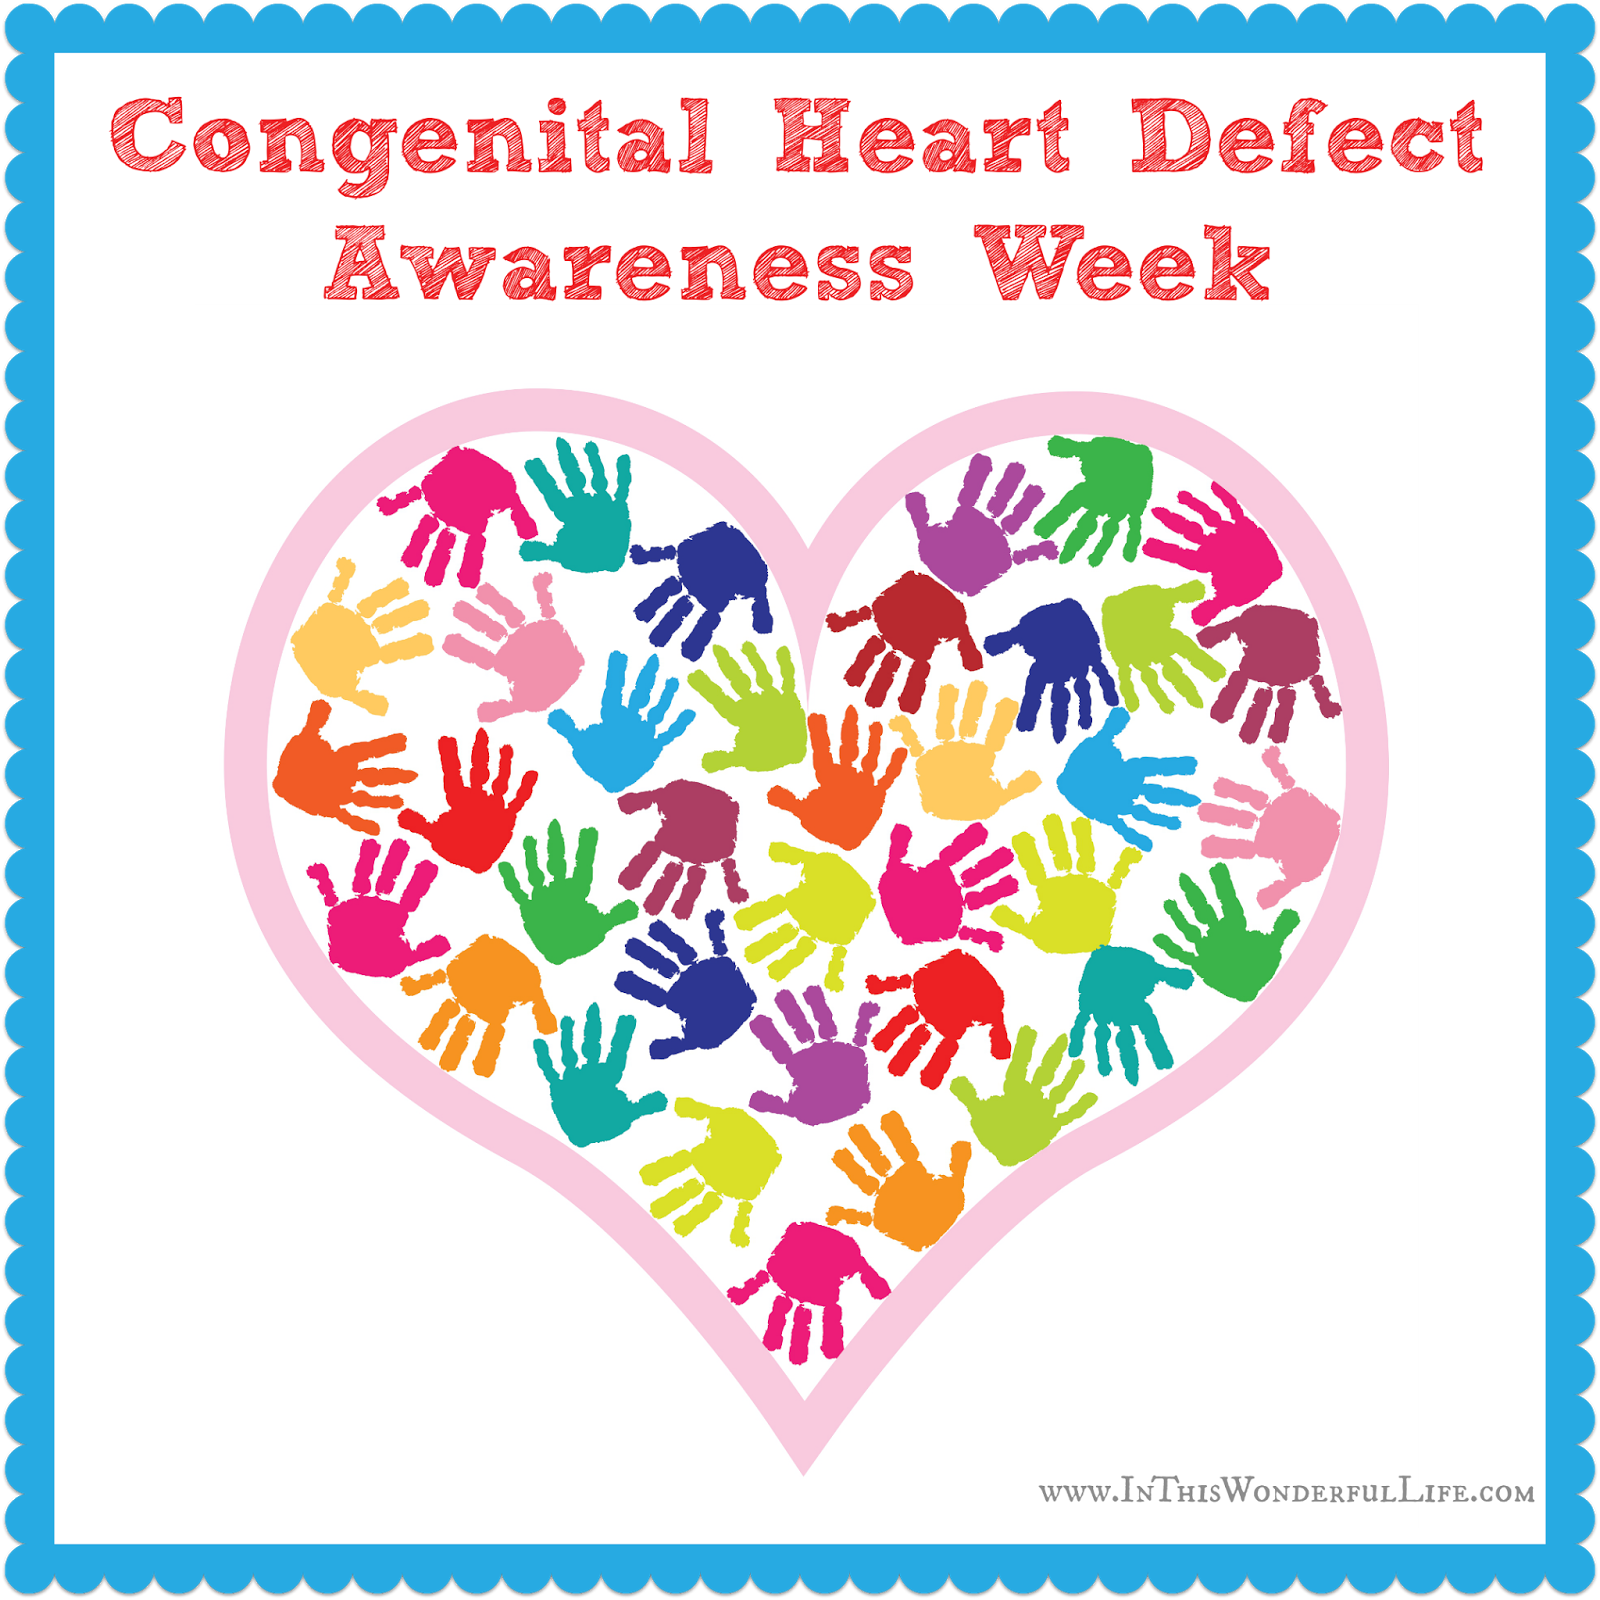 A congenital heart defect is a malformation of the heart that is present at birth Some congenital heart defects are very minor and will never cause health problems